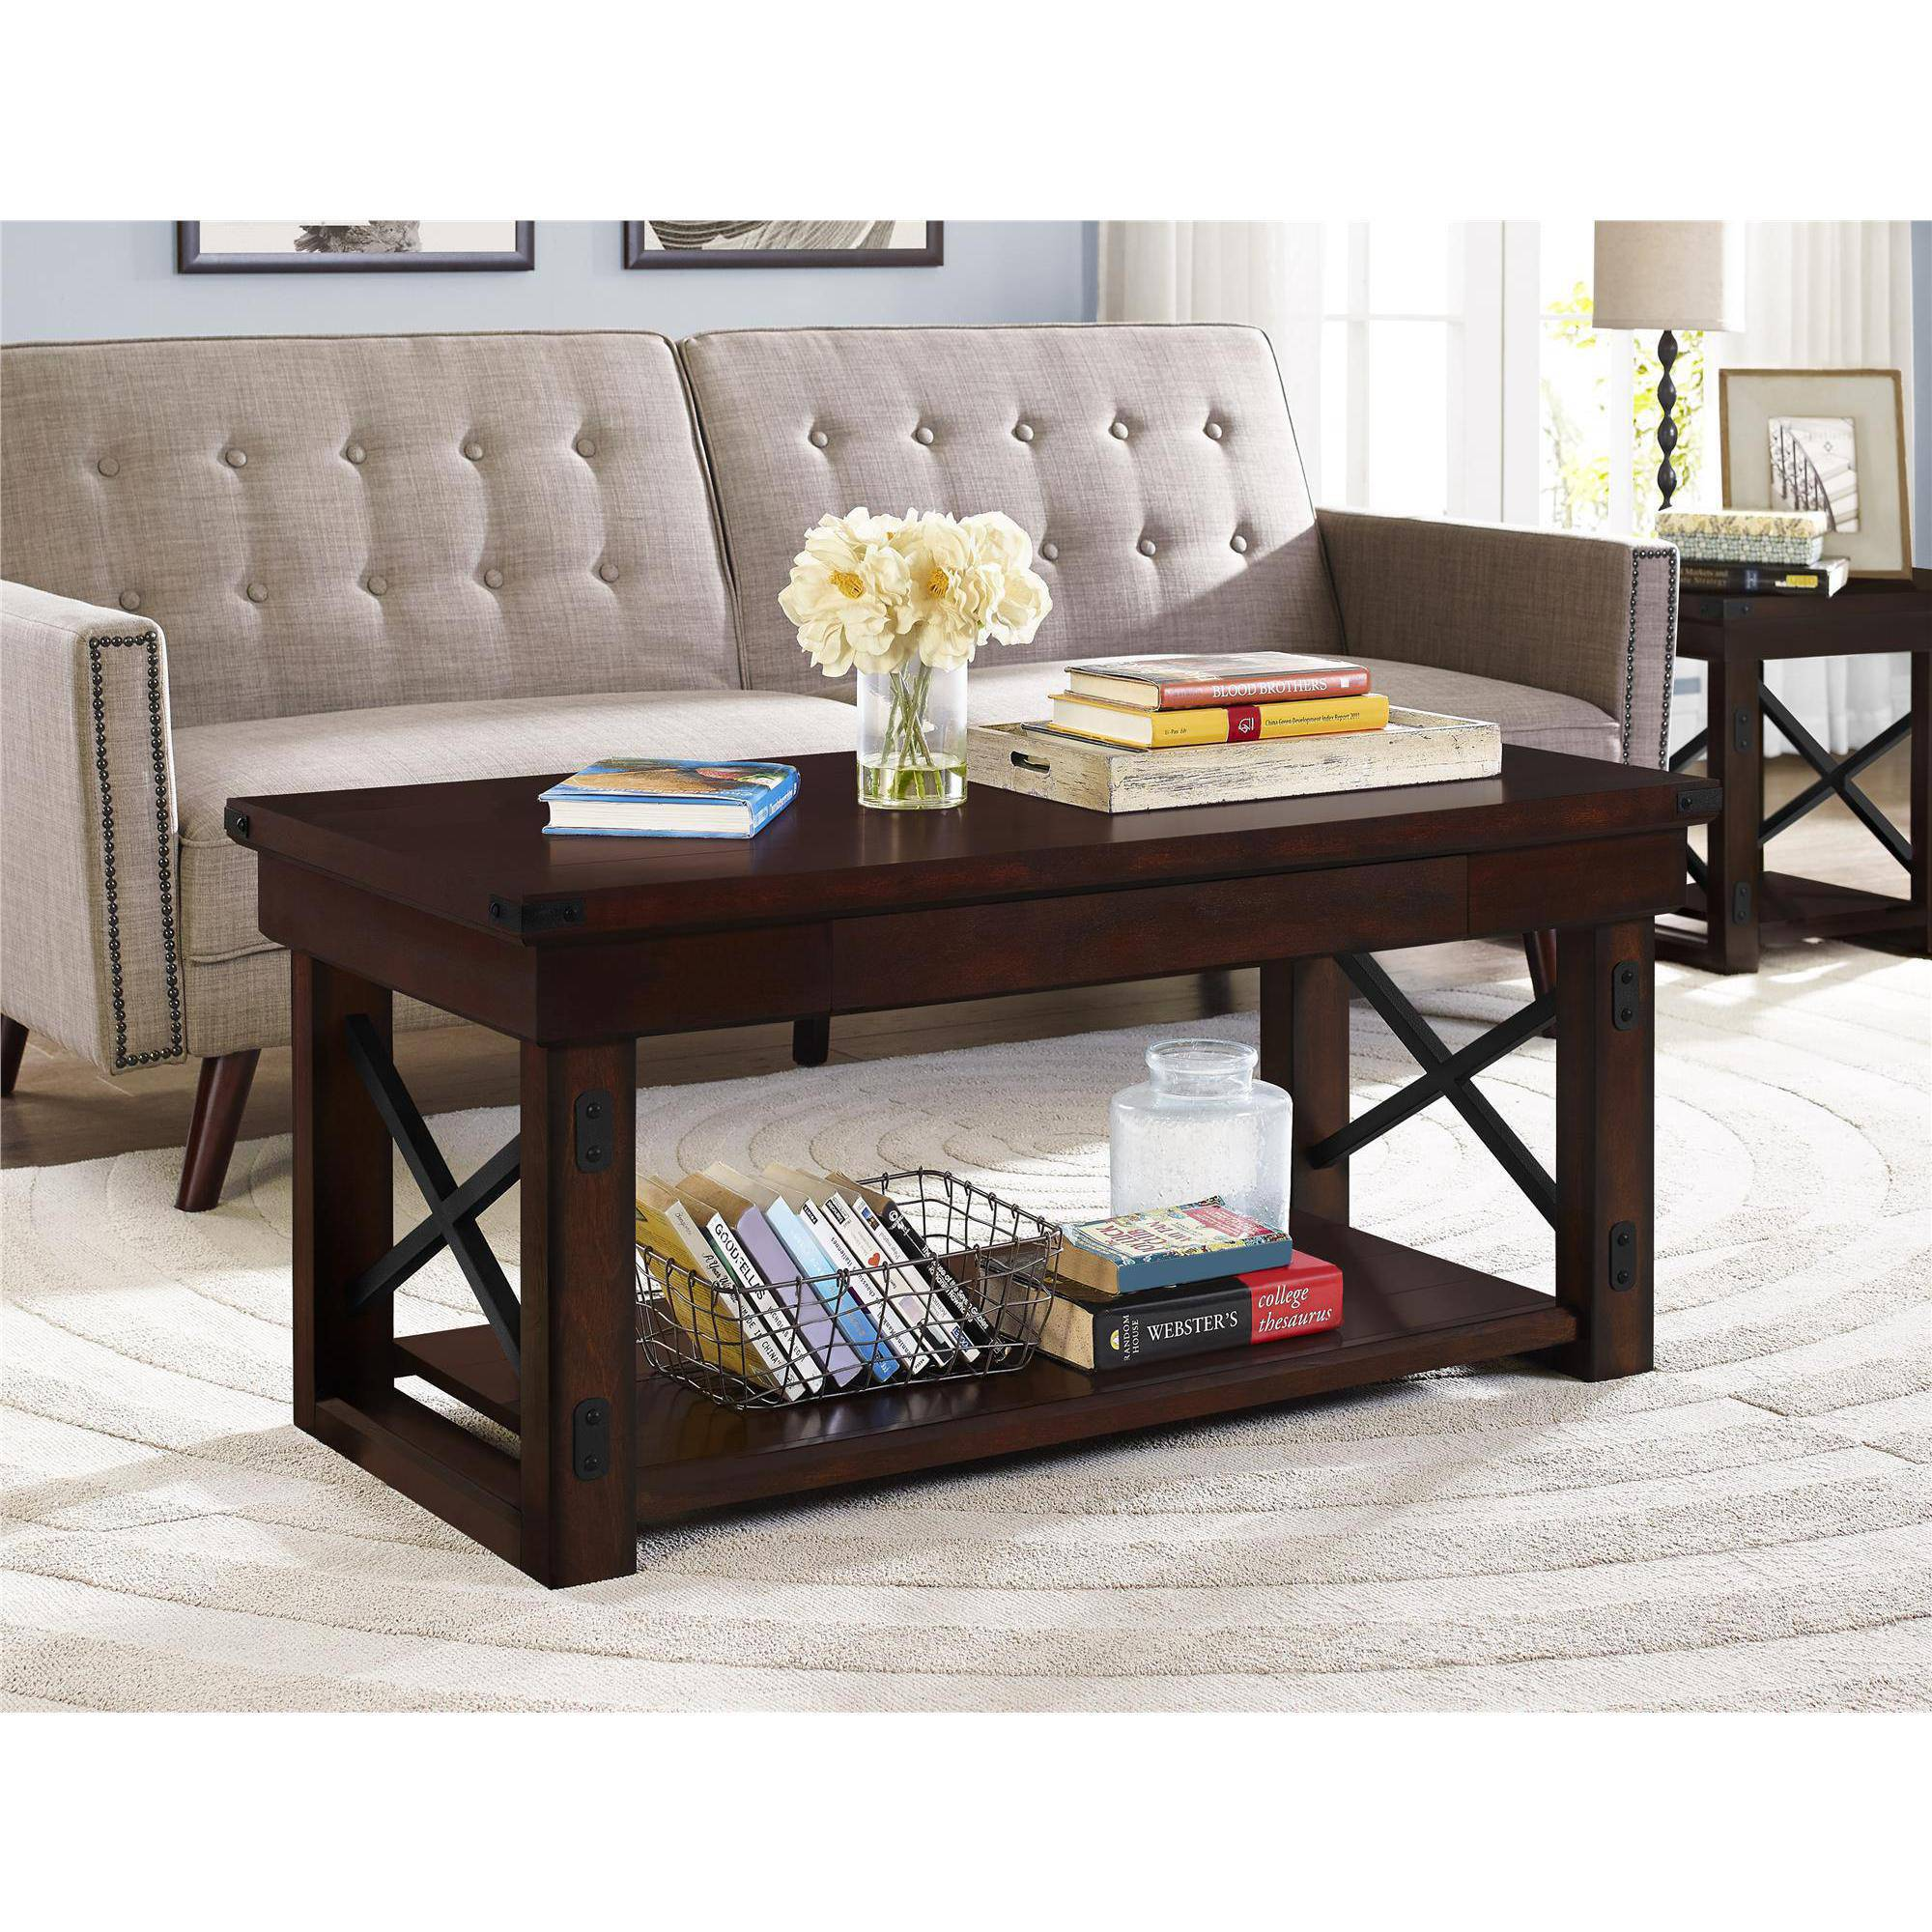 Better Homes and Gardens Preston Park Coffee Table Mahogany